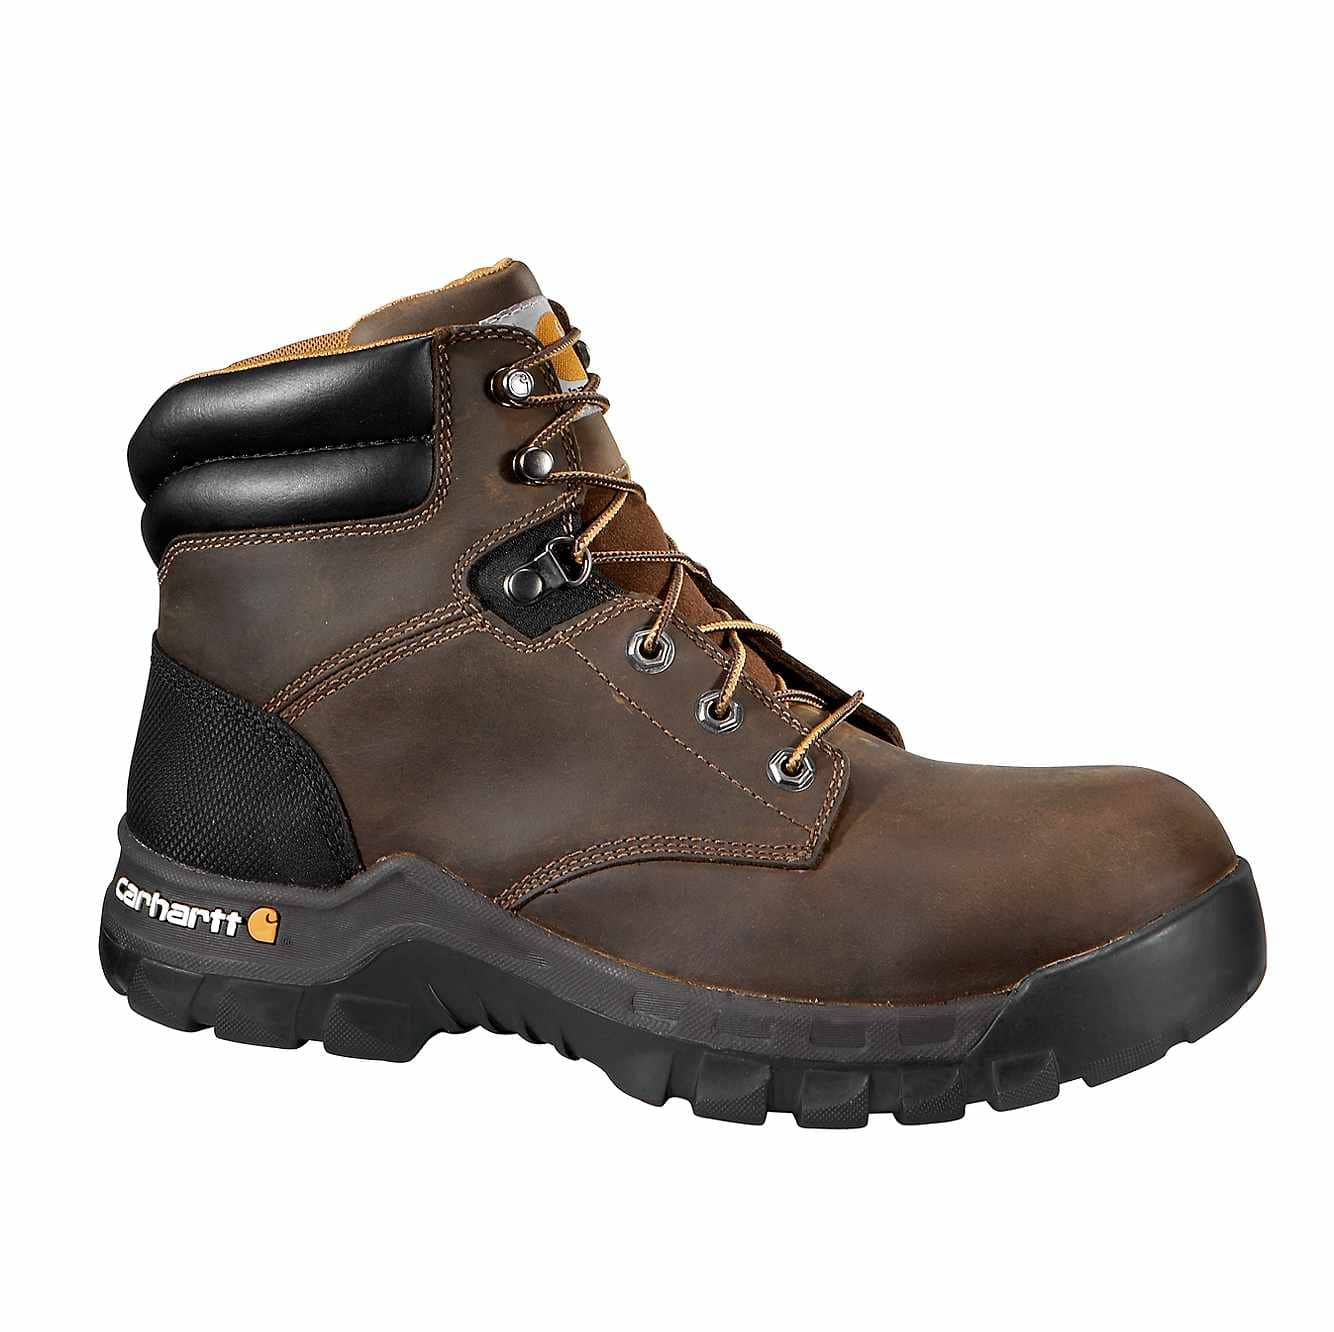 Picture of Rugged Flex® 6-Inch Composite Toe Work Boot in Carhartt Brown